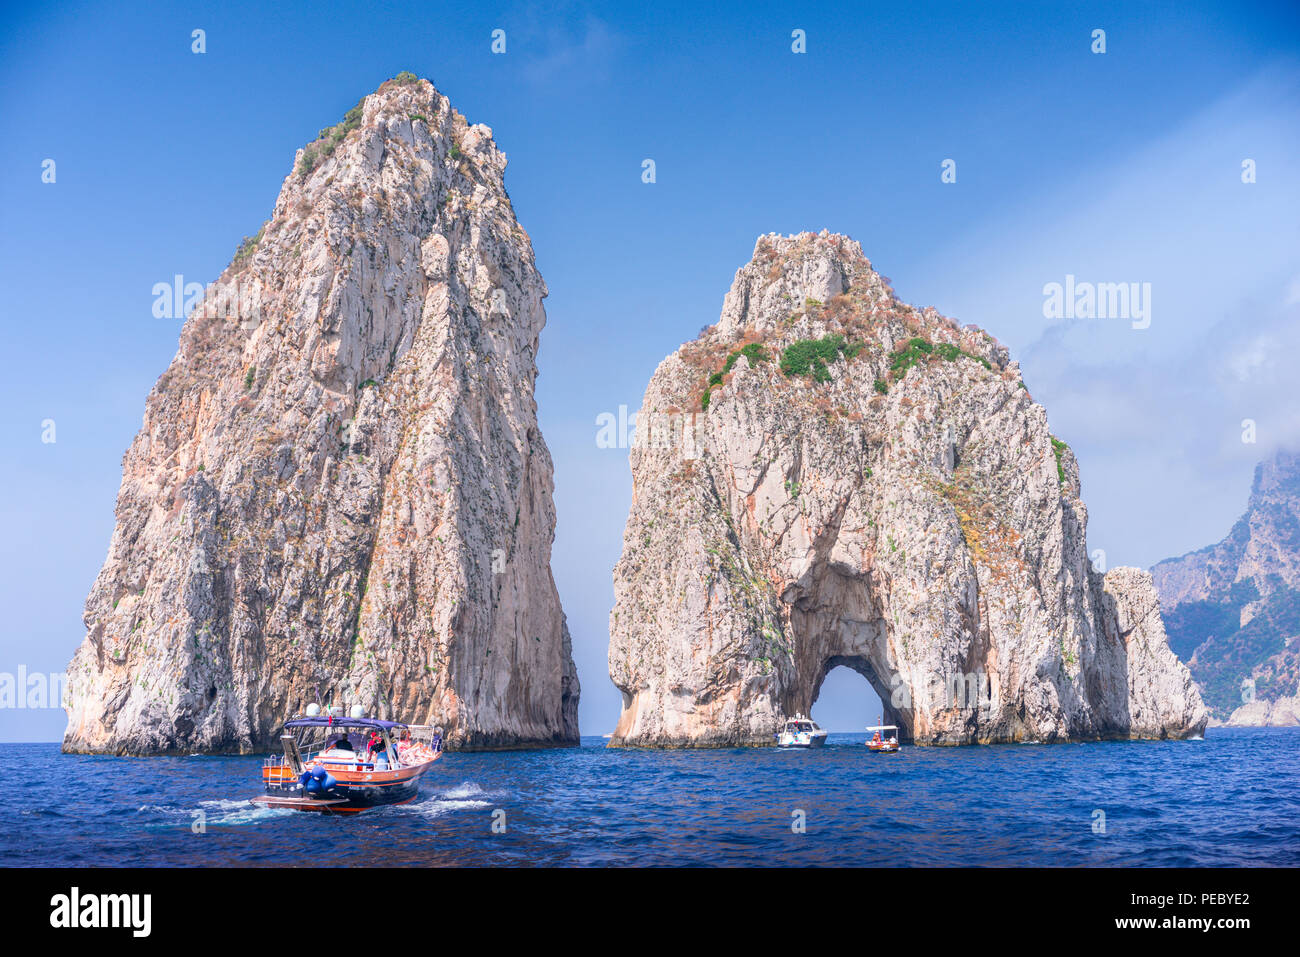 Approaching the Faraglioni by boat these are stacks formed from rocks on the southern side of Capri, one distinguishing feature is the archway - Stock Image